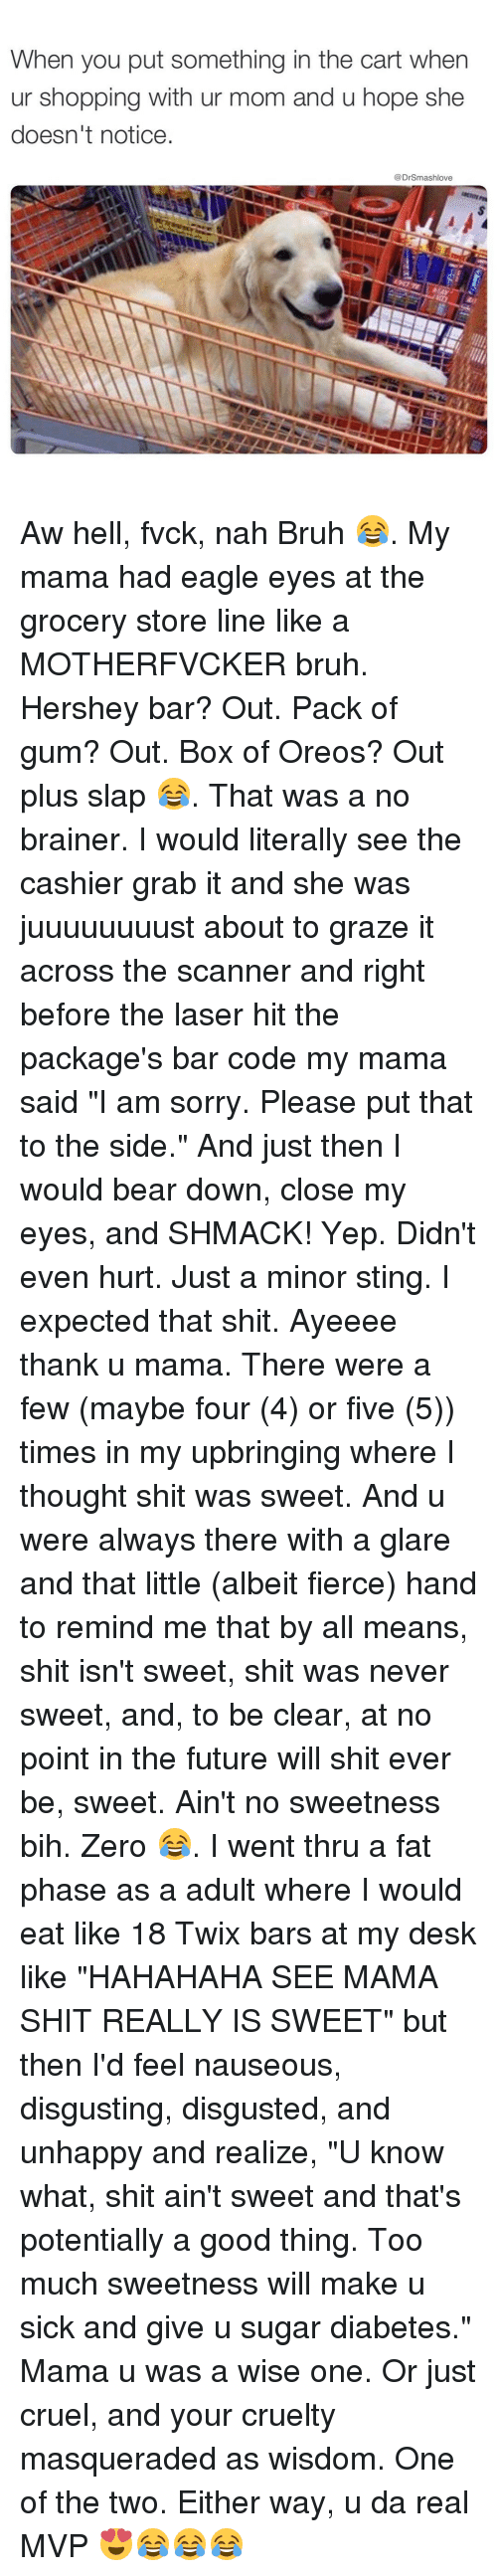 """Grazing: When you put something in the cart when  ur shopping with ur mom and u hope she  doesn't notice.  @Dr Smashlove Aw hell, fvck, nah Bruh 😂. My mama had eagle eyes at the grocery store line like a MOTHERFVCKER bruh. Hershey bar? Out. Pack of gum? Out. Box of Oreos? Out plus slap 😂. That was a no brainer. I would literally see the cashier grab it and she was juuuuuuuust about to graze it across the scanner and right before the laser hit the package's bar code my mama said """"I am sorry. Please put that to the side."""" And just then I would bear down, close my eyes, and SHMACK! Yep. Didn't even hurt. Just a minor sting. I expected that shit. Ayeeee thank u mama. There were a few (maybe four (4) or five (5)) times in my upbringing where I thought shit was sweet. And u were always there with a glare and that little (albeit fierce) hand to remind me that by all means, shit isn't sweet, shit was never sweet, and, to be clear, at no point in the future will shit ever be, sweet. Ain't no sweetness bih. Zero 😂. I went thru a fat phase as a adult where I would eat like 18 Twix bars at my desk like """"HAHAHAHA SEE MAMA SHIT REALLY IS SWEET"""" but then I'd feel nauseous, disgusting, disgusted, and unhappy and realize, """"U know what, shit ain't sweet and that's potentially a good thing. Too much sweetness will make u sick and give u sugar diabetes."""" Mama u was a wise one. Or just cruel, and your cruelty masqueraded as wisdom. One of the two. Either way, u da real MVP 😍😂😂😂"""